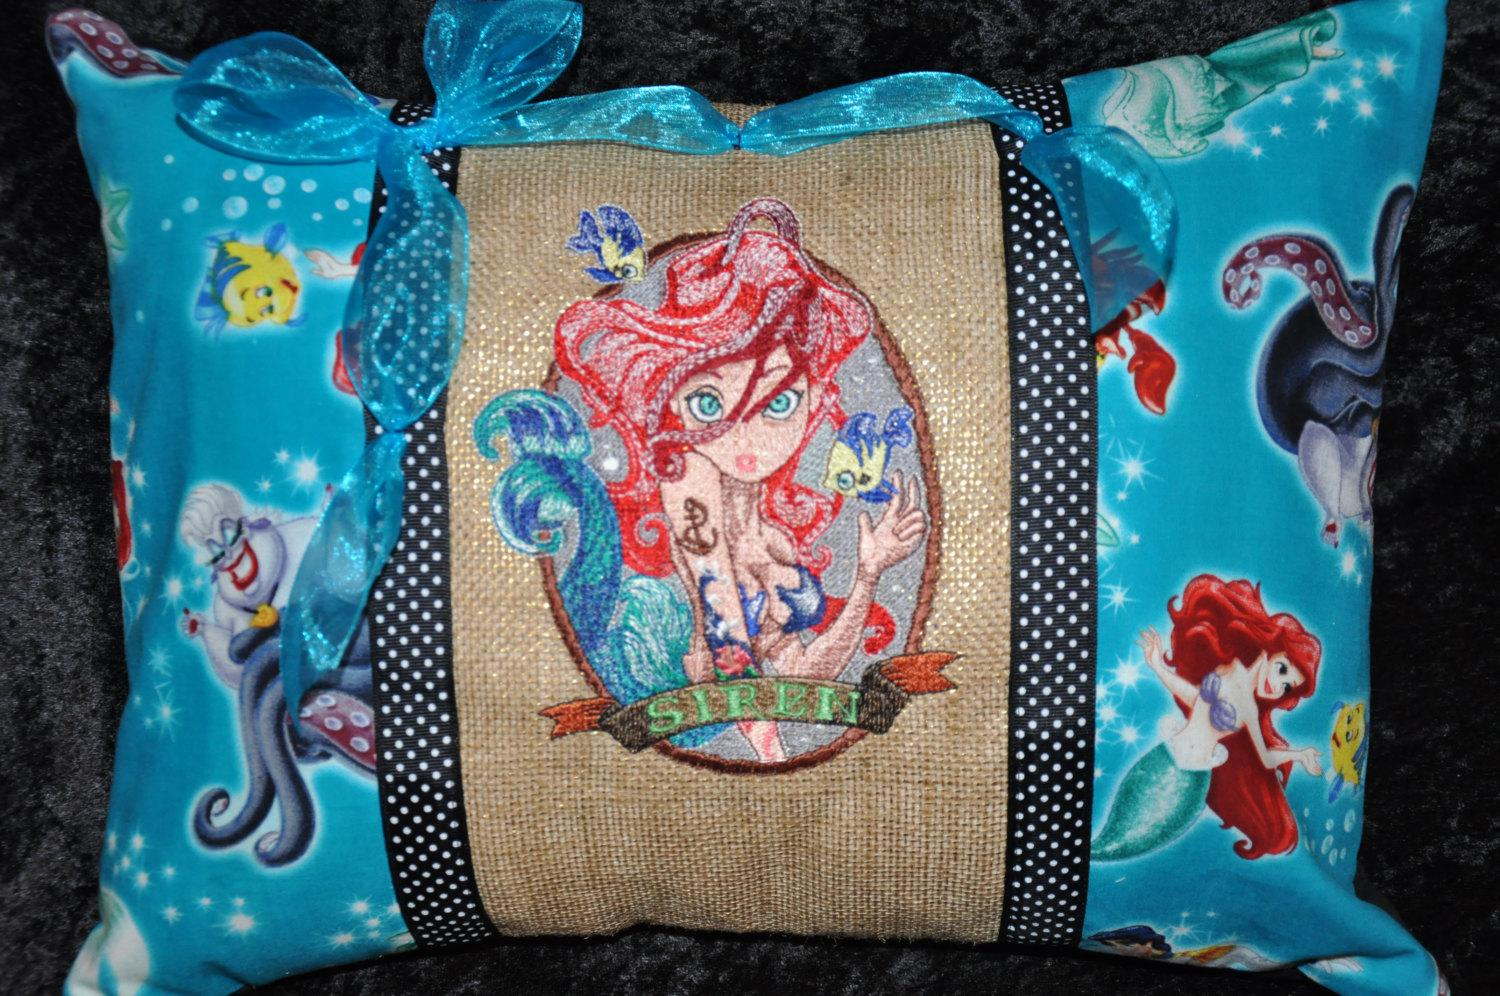 Cushion with Siren embroidery design